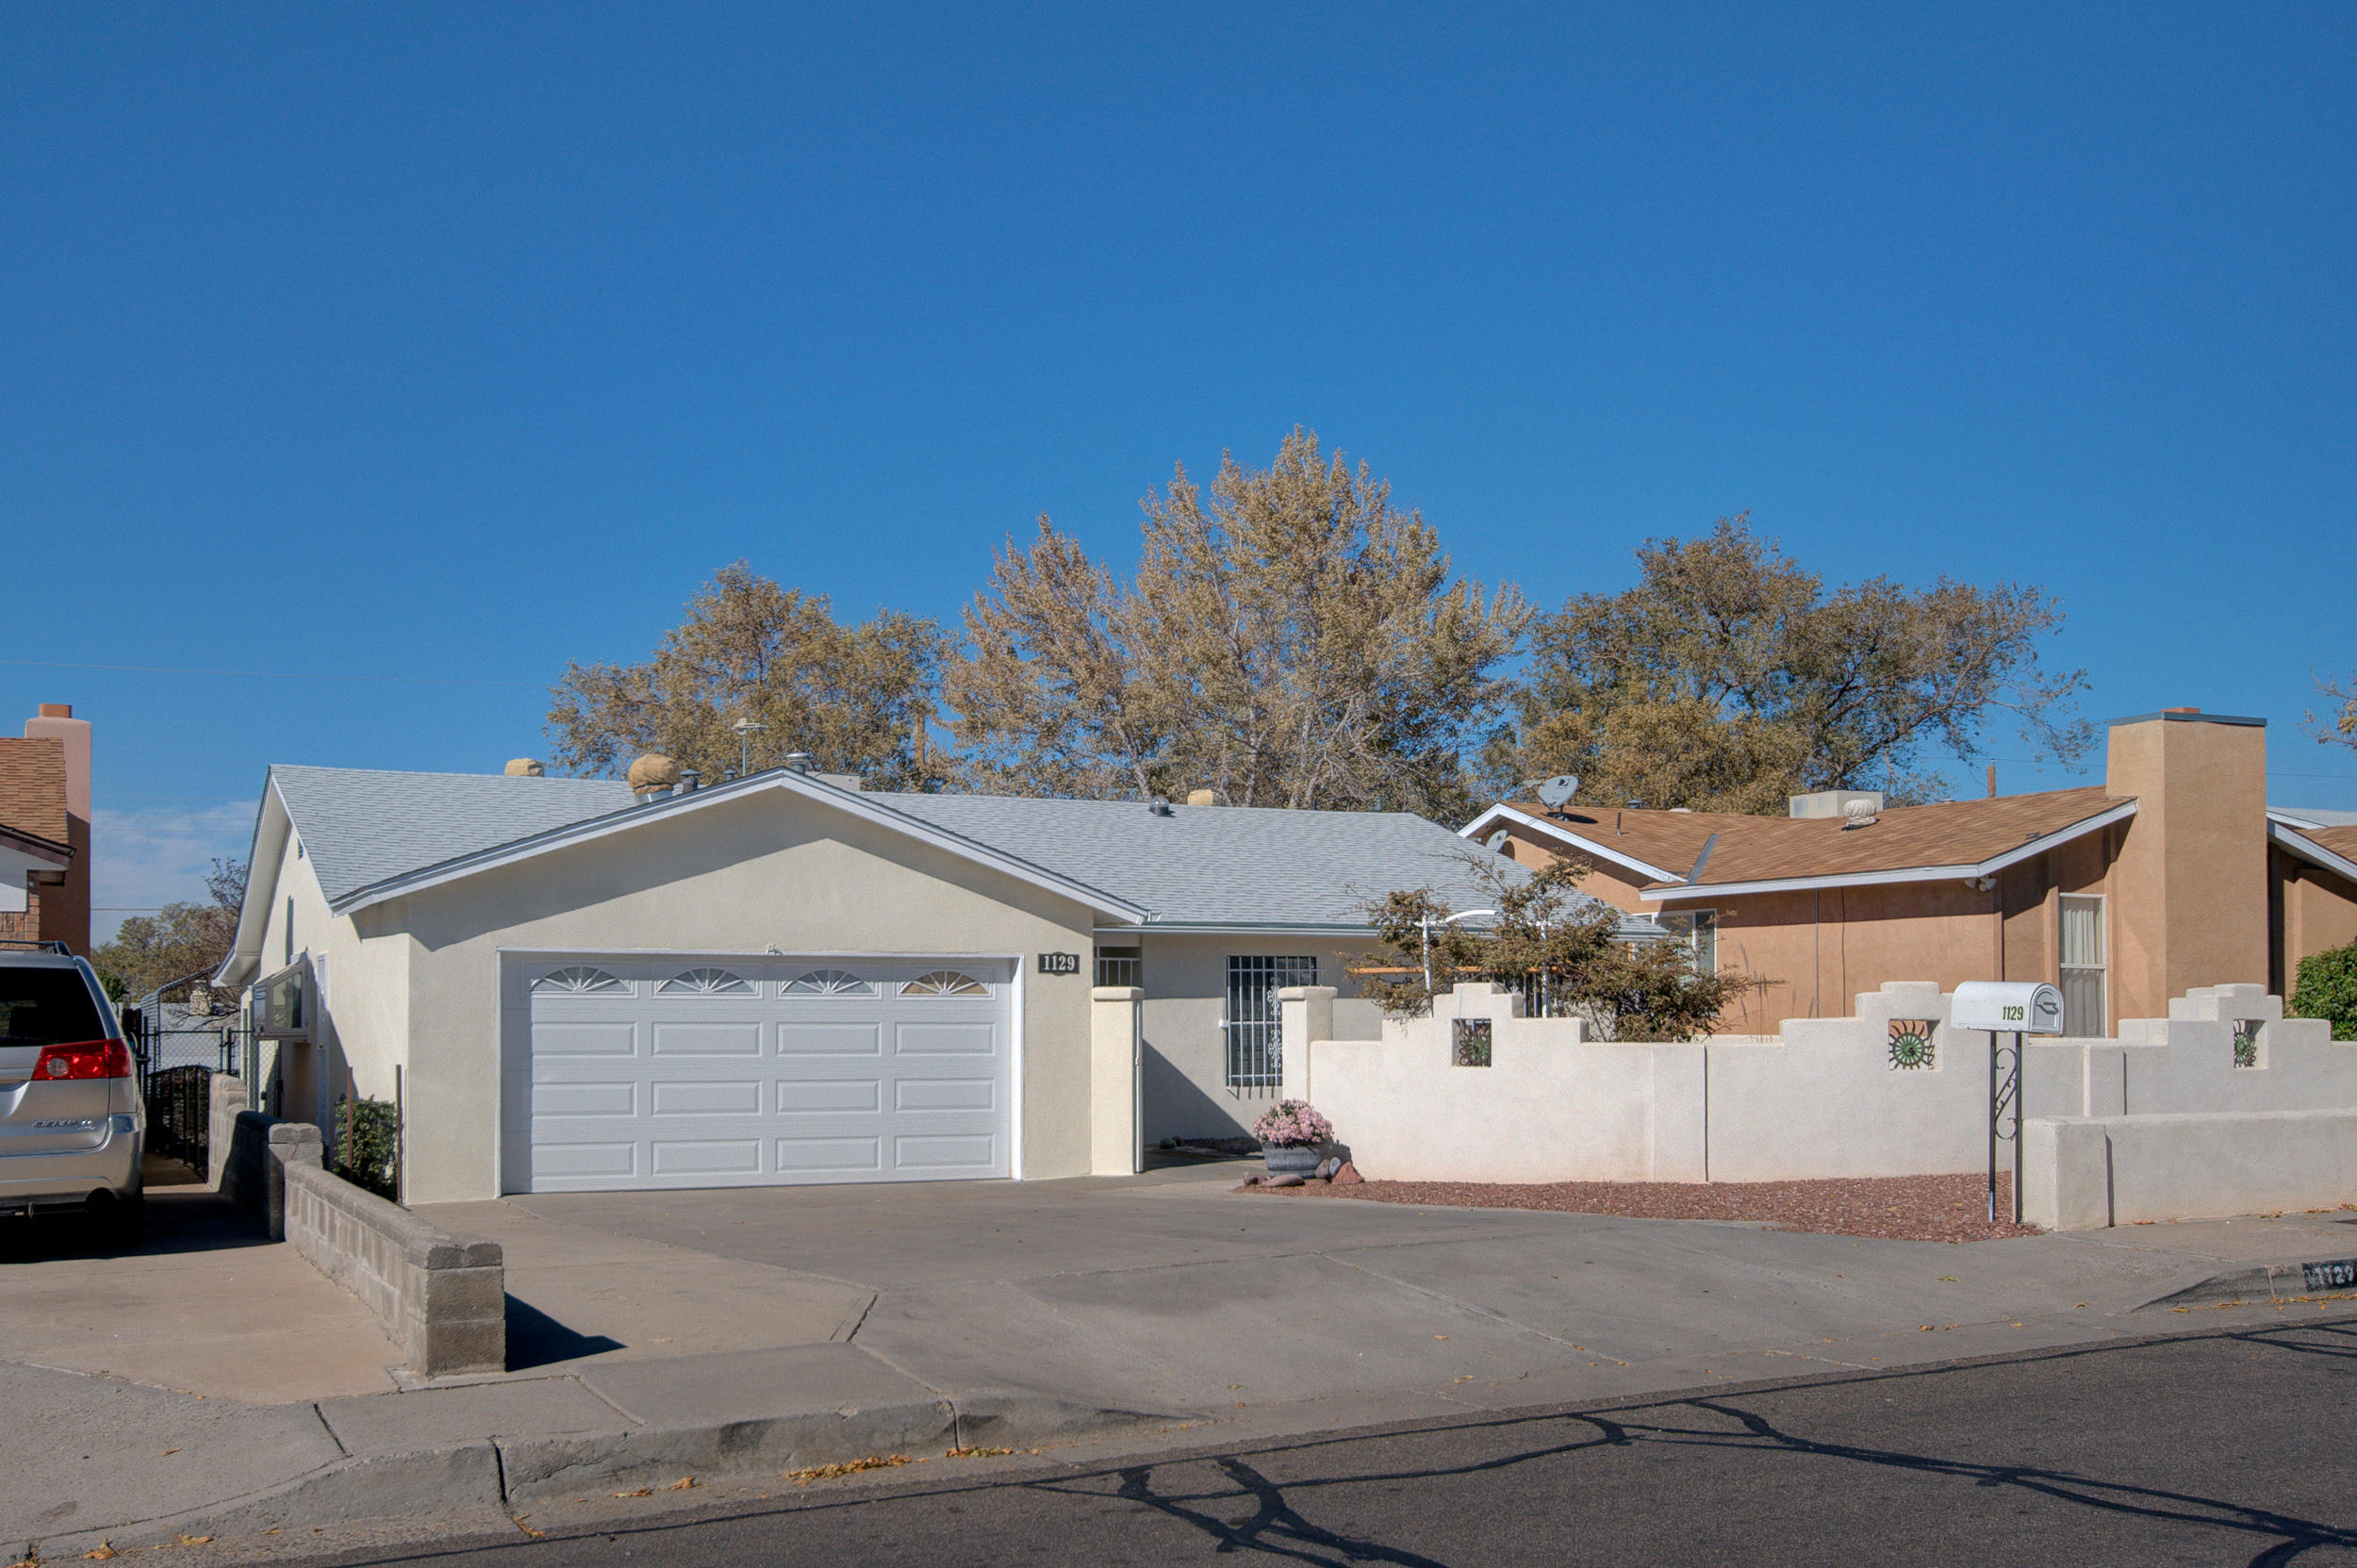 Home for the Holidays!! MOVE-IN Ready!  Sellers have upgraded 3BR 2BA 2AG home over the years- kitchen w/ new cabinets and SS appliances, gas range 3+ovens, double dishwasher,tile floors, 200 amp service w/ new copper wiring and misc. elec. features not found in most homes (See Features List), Exterior windows are double pane w/ brand new screens. 12'x35' covered parking for RV w/backyard access. 10'x16' Tuff Shed w/loft, elec. service  w/great possibilities.  New Roof, Stucco, Hot Water Heater and exterior paint Aug 2020.  Interior paint and New Carpet Sept 2020.  Heated/cooled Solarium w/wood burning stove and beautiful brick floor serves as family room year round.   Hurry and schedule an appointment to view today!